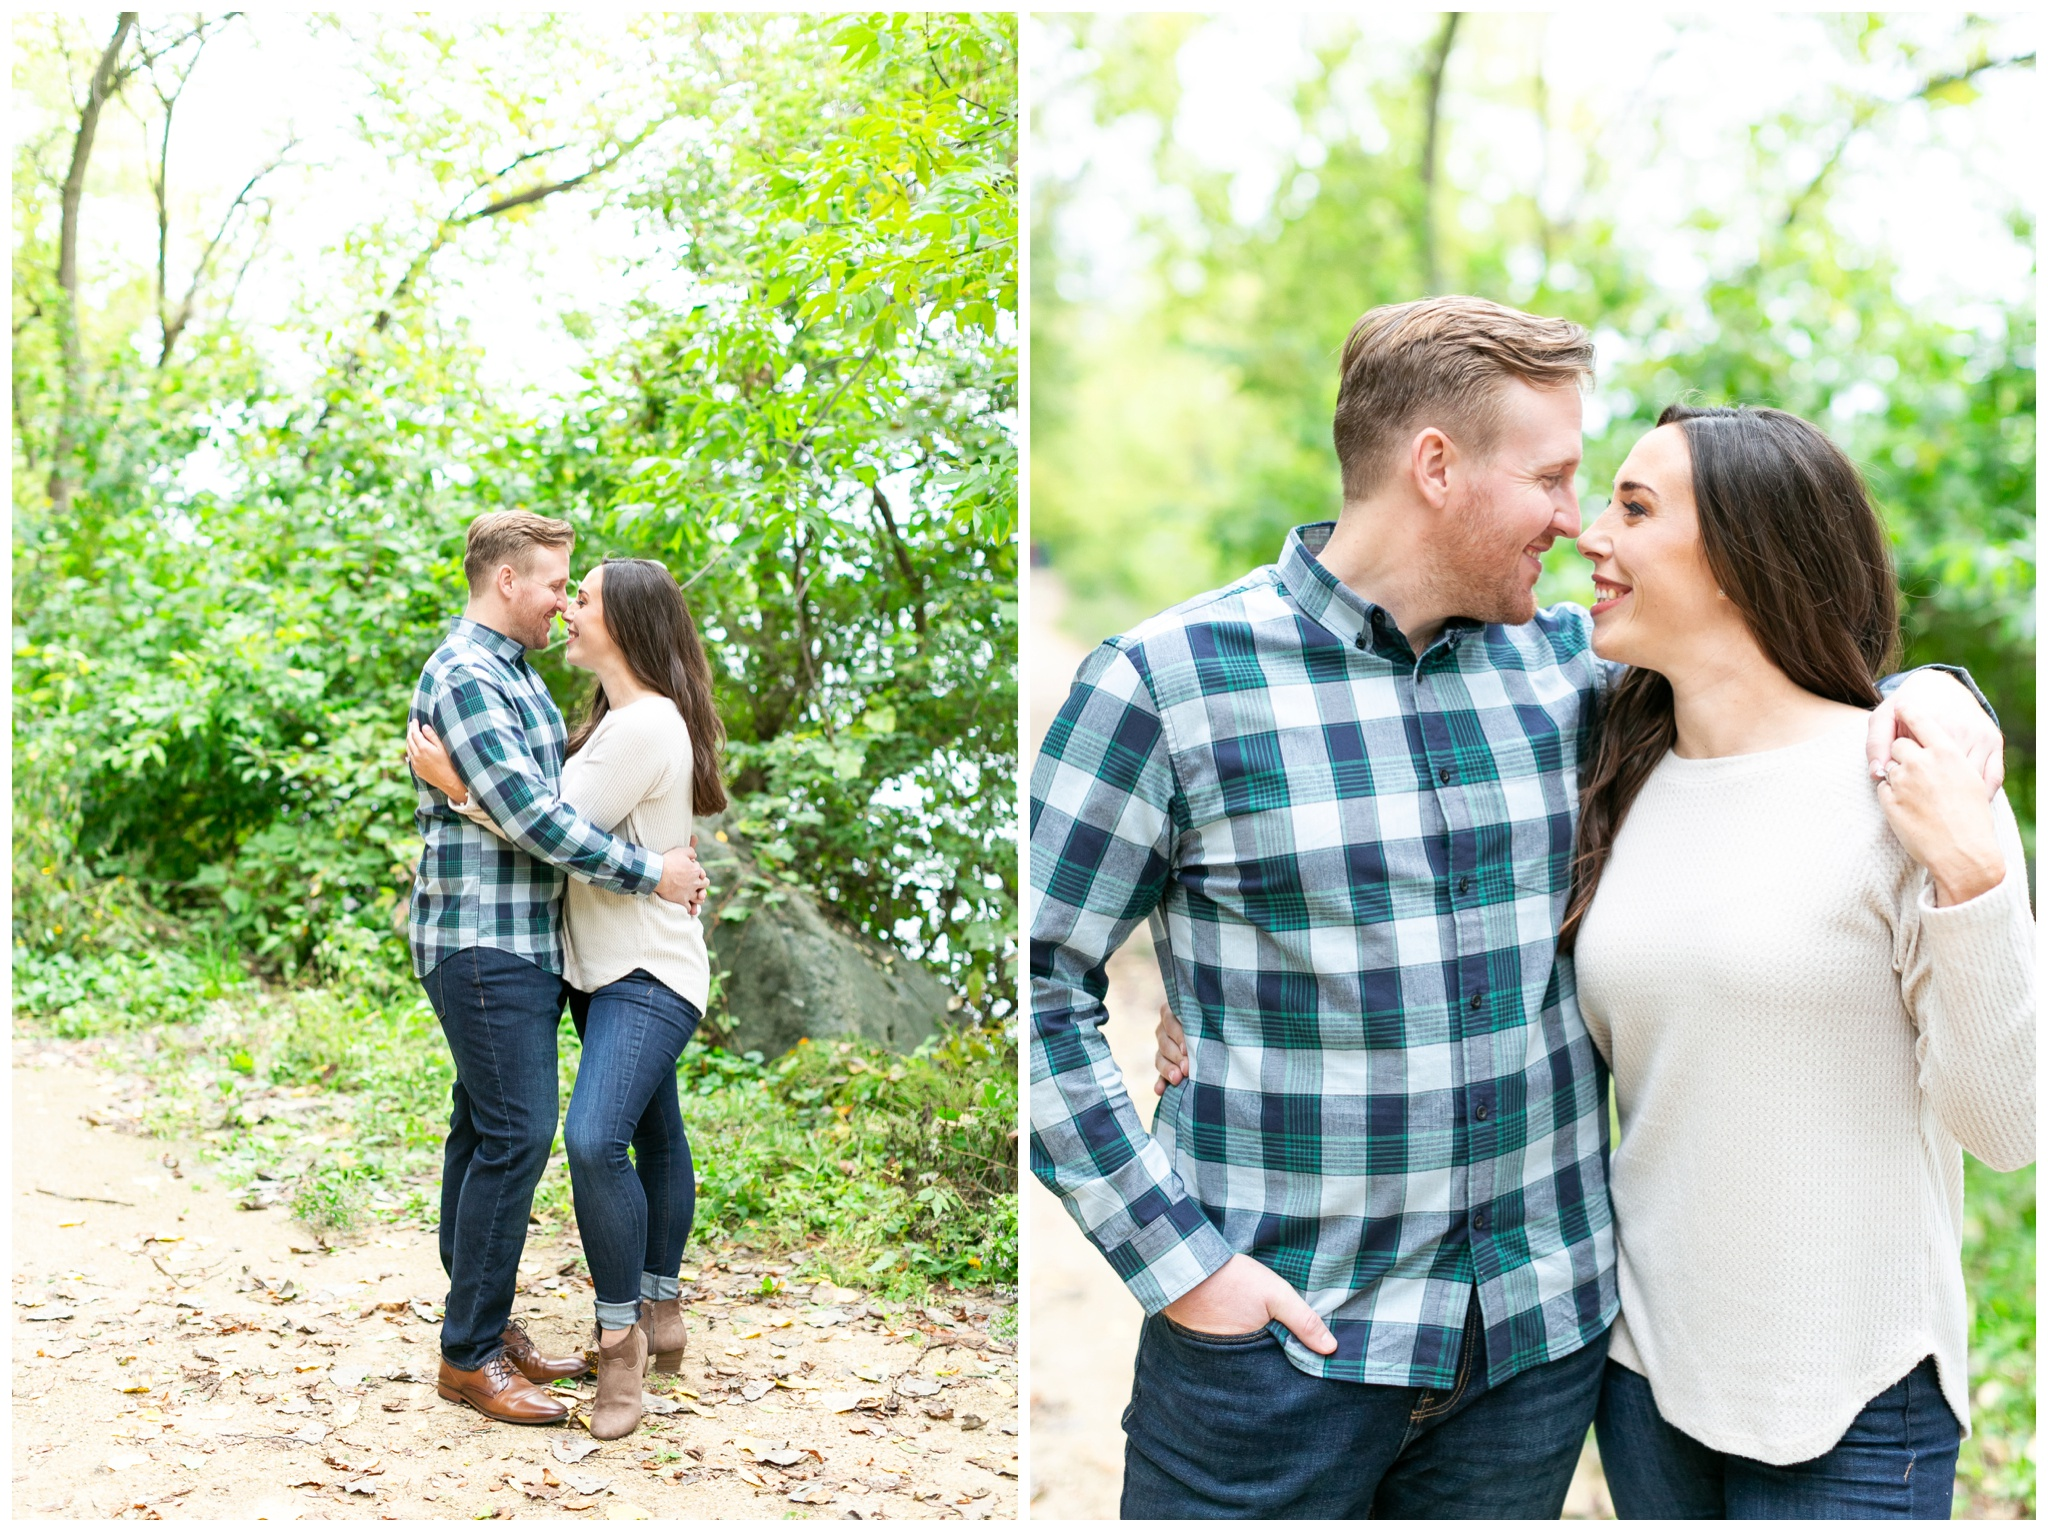 memorial_union_engagement_session_madison_wisconsin_1643.jpg